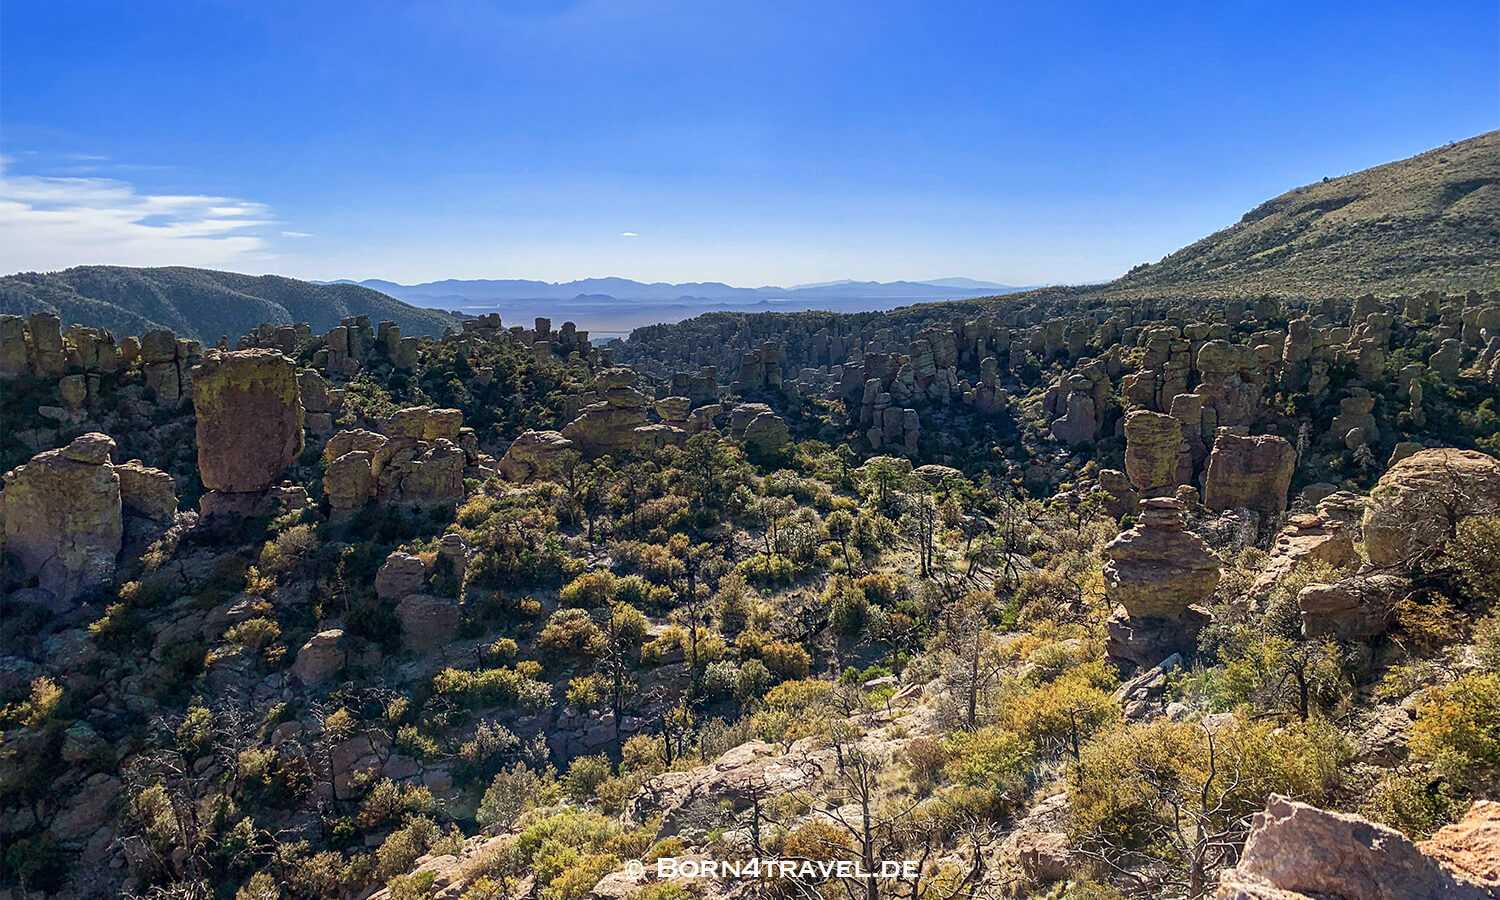 Echo Trail im Chiricahua National Monument, Arizona,USA,born4travel.de